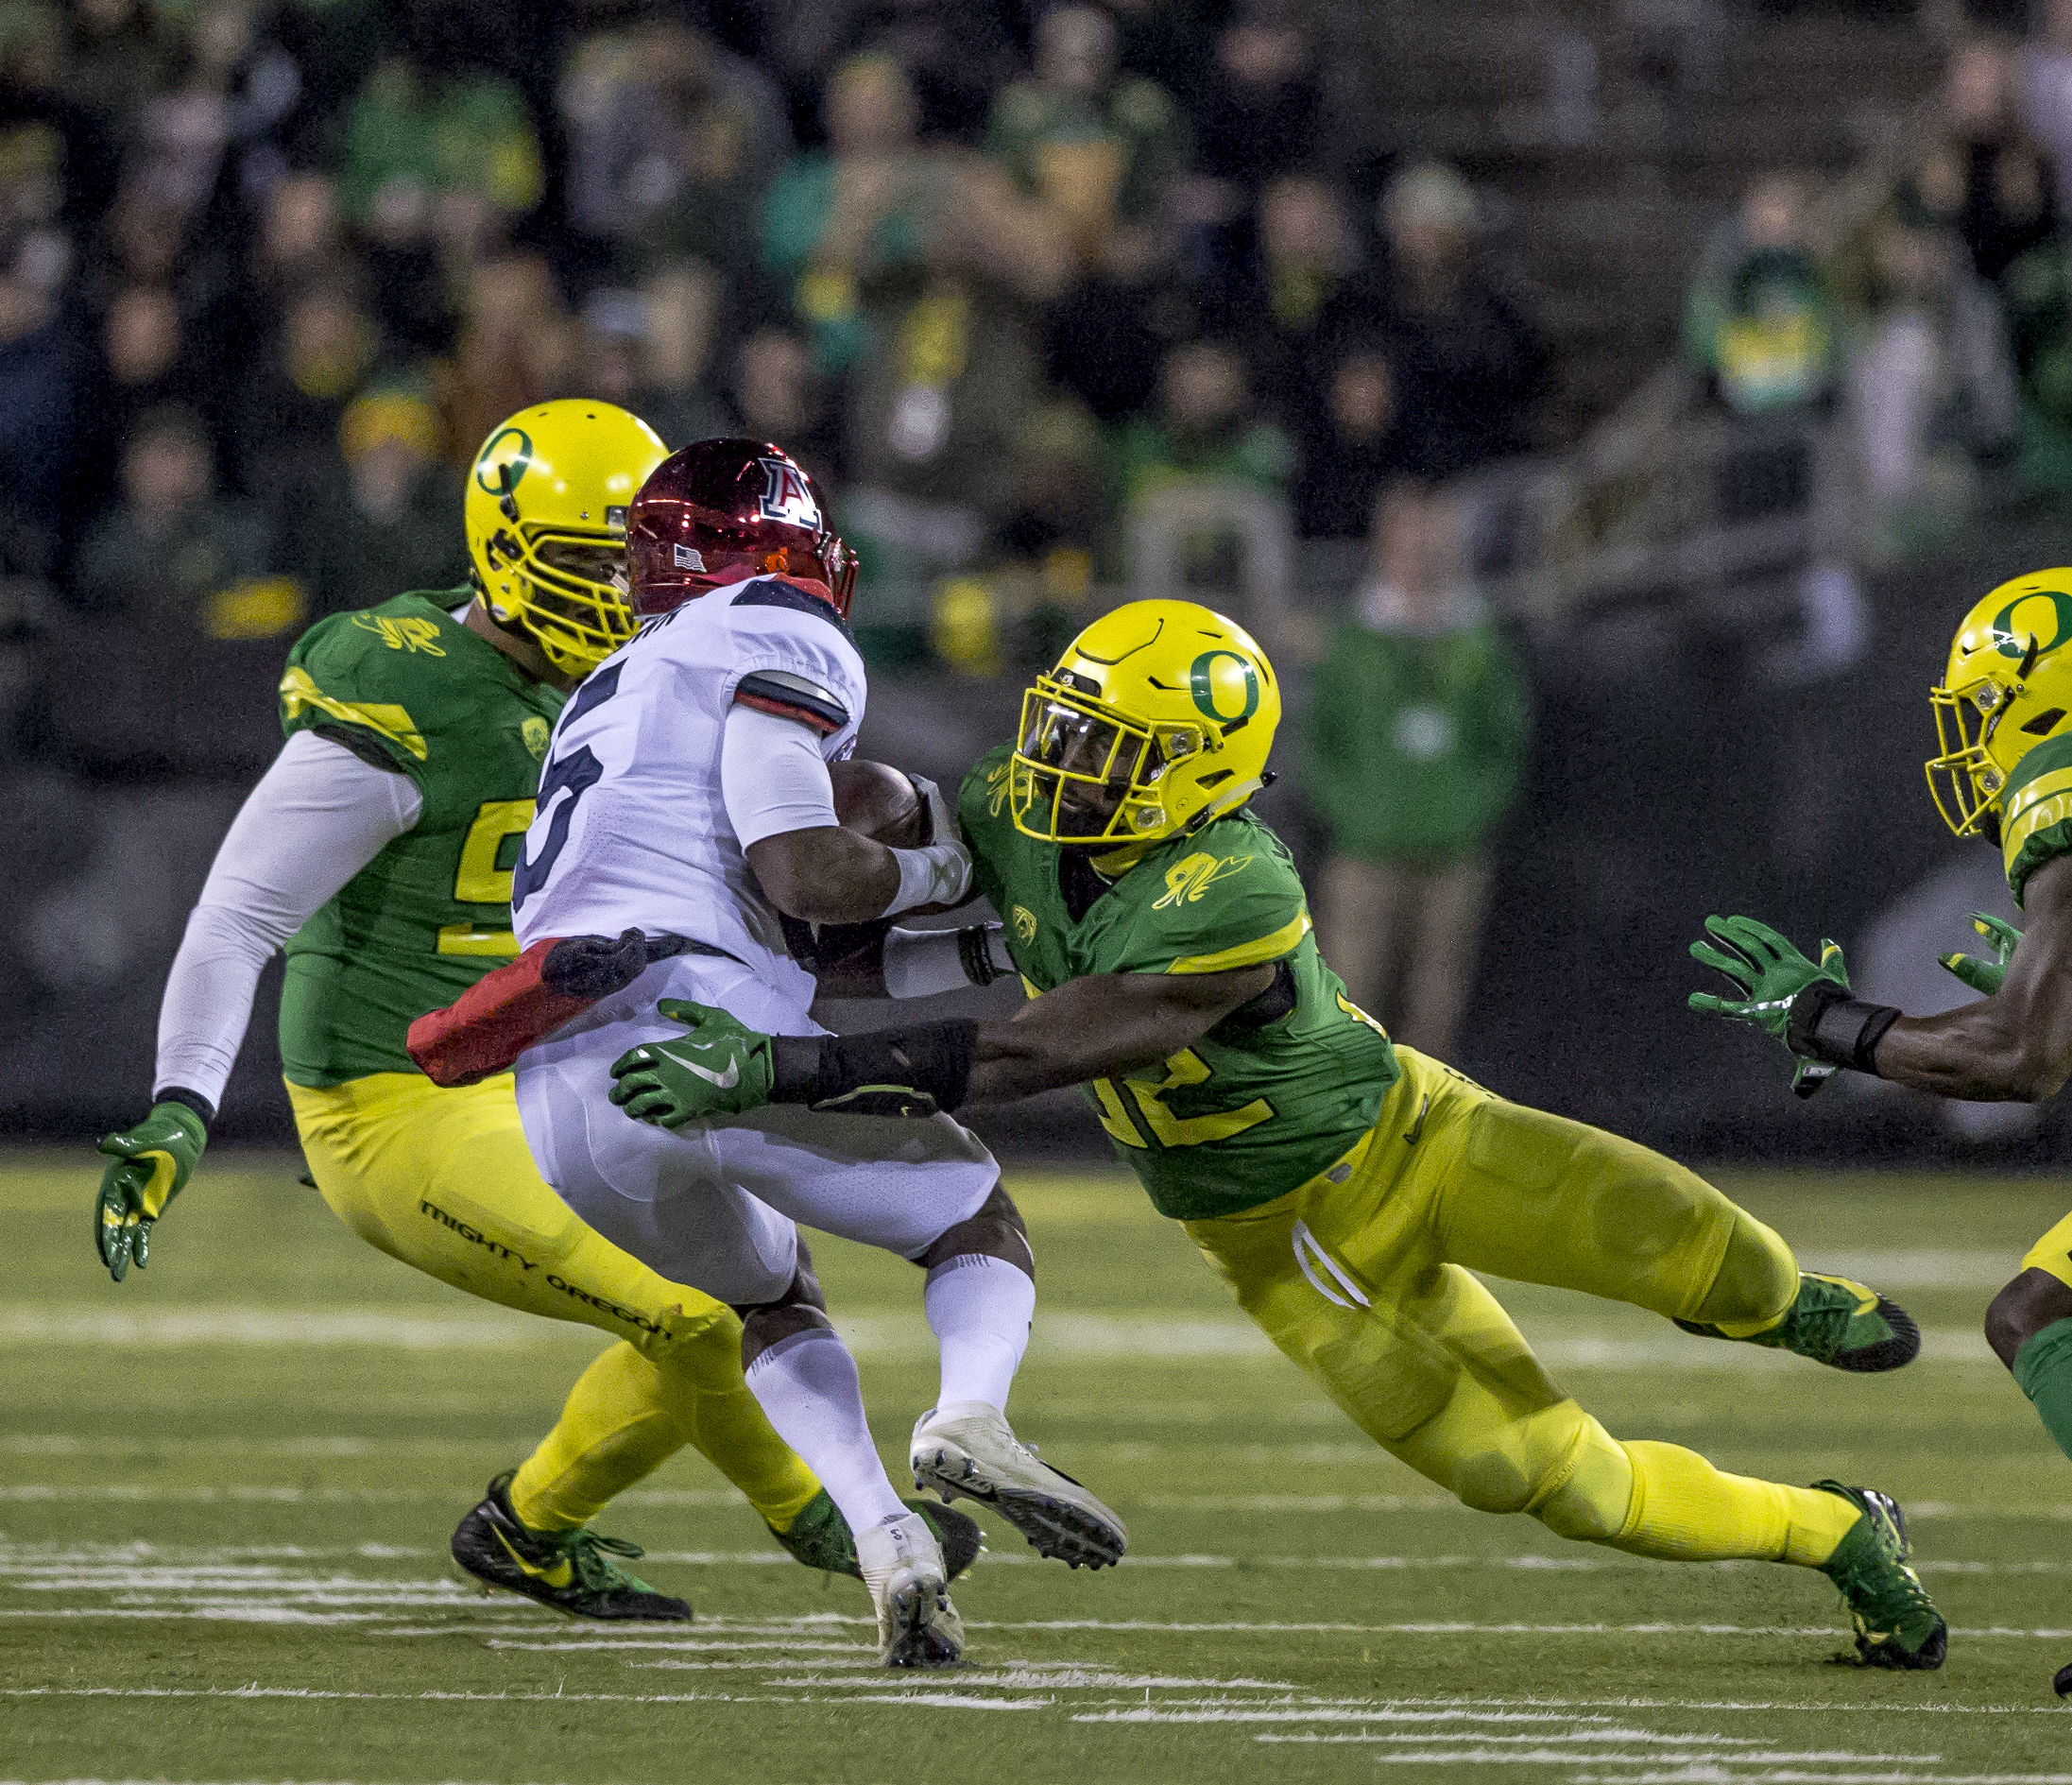 Oregon defender La'Mar Winston Jr. (#32) brings down Arizona wide receiver Brian Casteel (#5). The Oregon Ducks lead the Arizona Wildcats 28 to 21 at the end of the first half at Autzen Stadium on Saturday, November 18, 2017. Photo by Ben Lonergan, Oregon News Lab